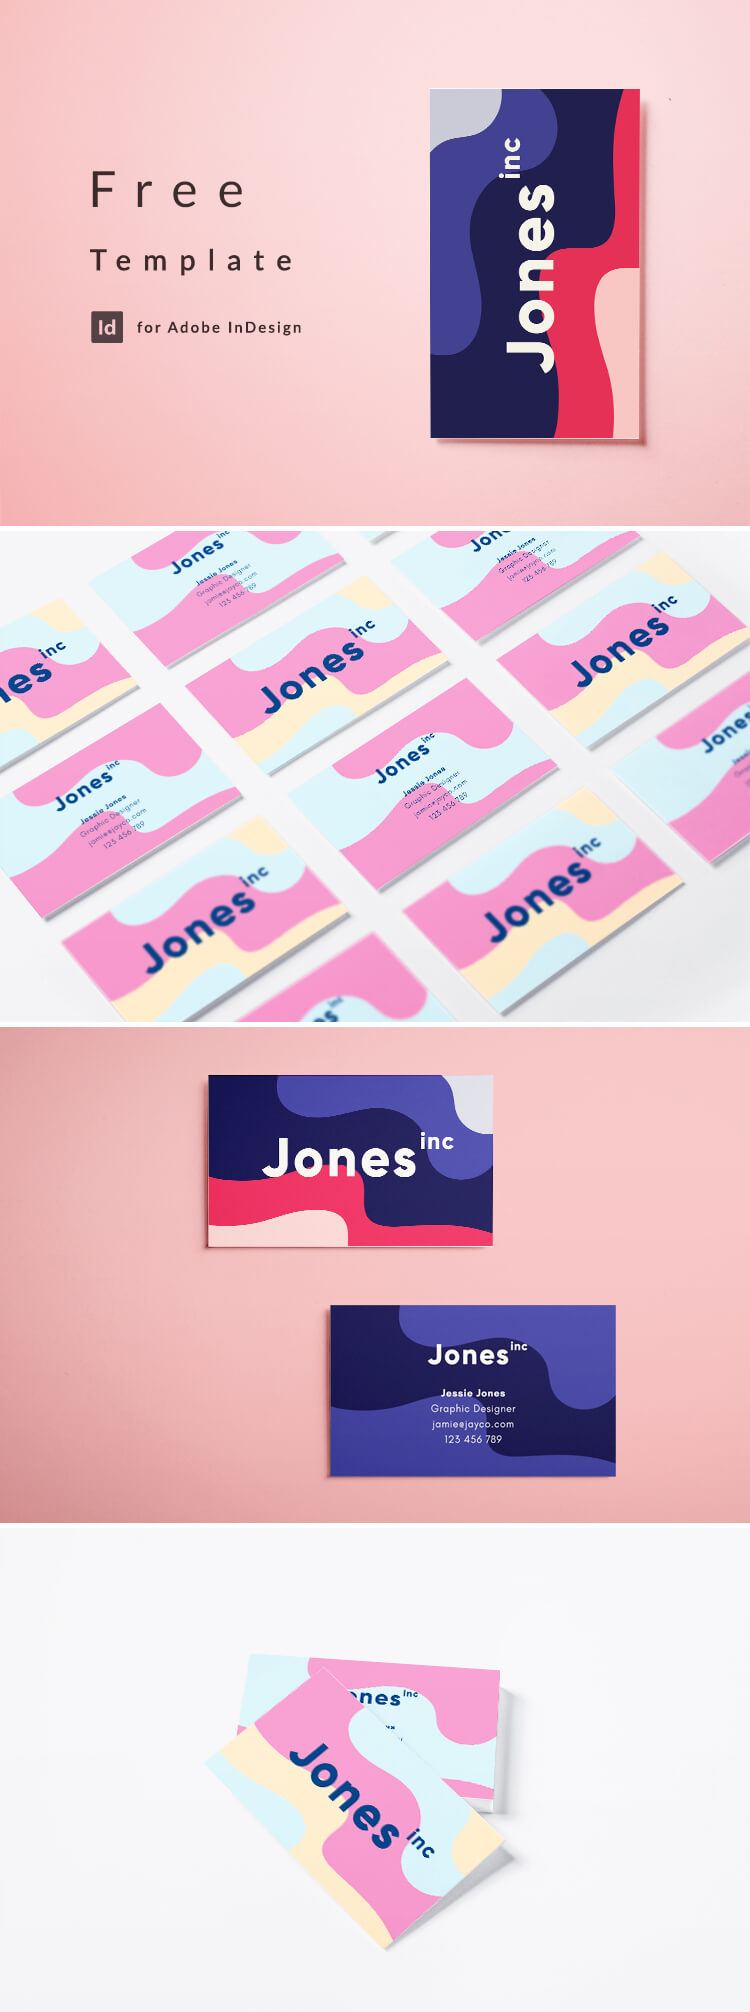 Eighties business card layout. Wavey, graphic, colorful design for creatives. Free to download. Free Template for InDesign CC.